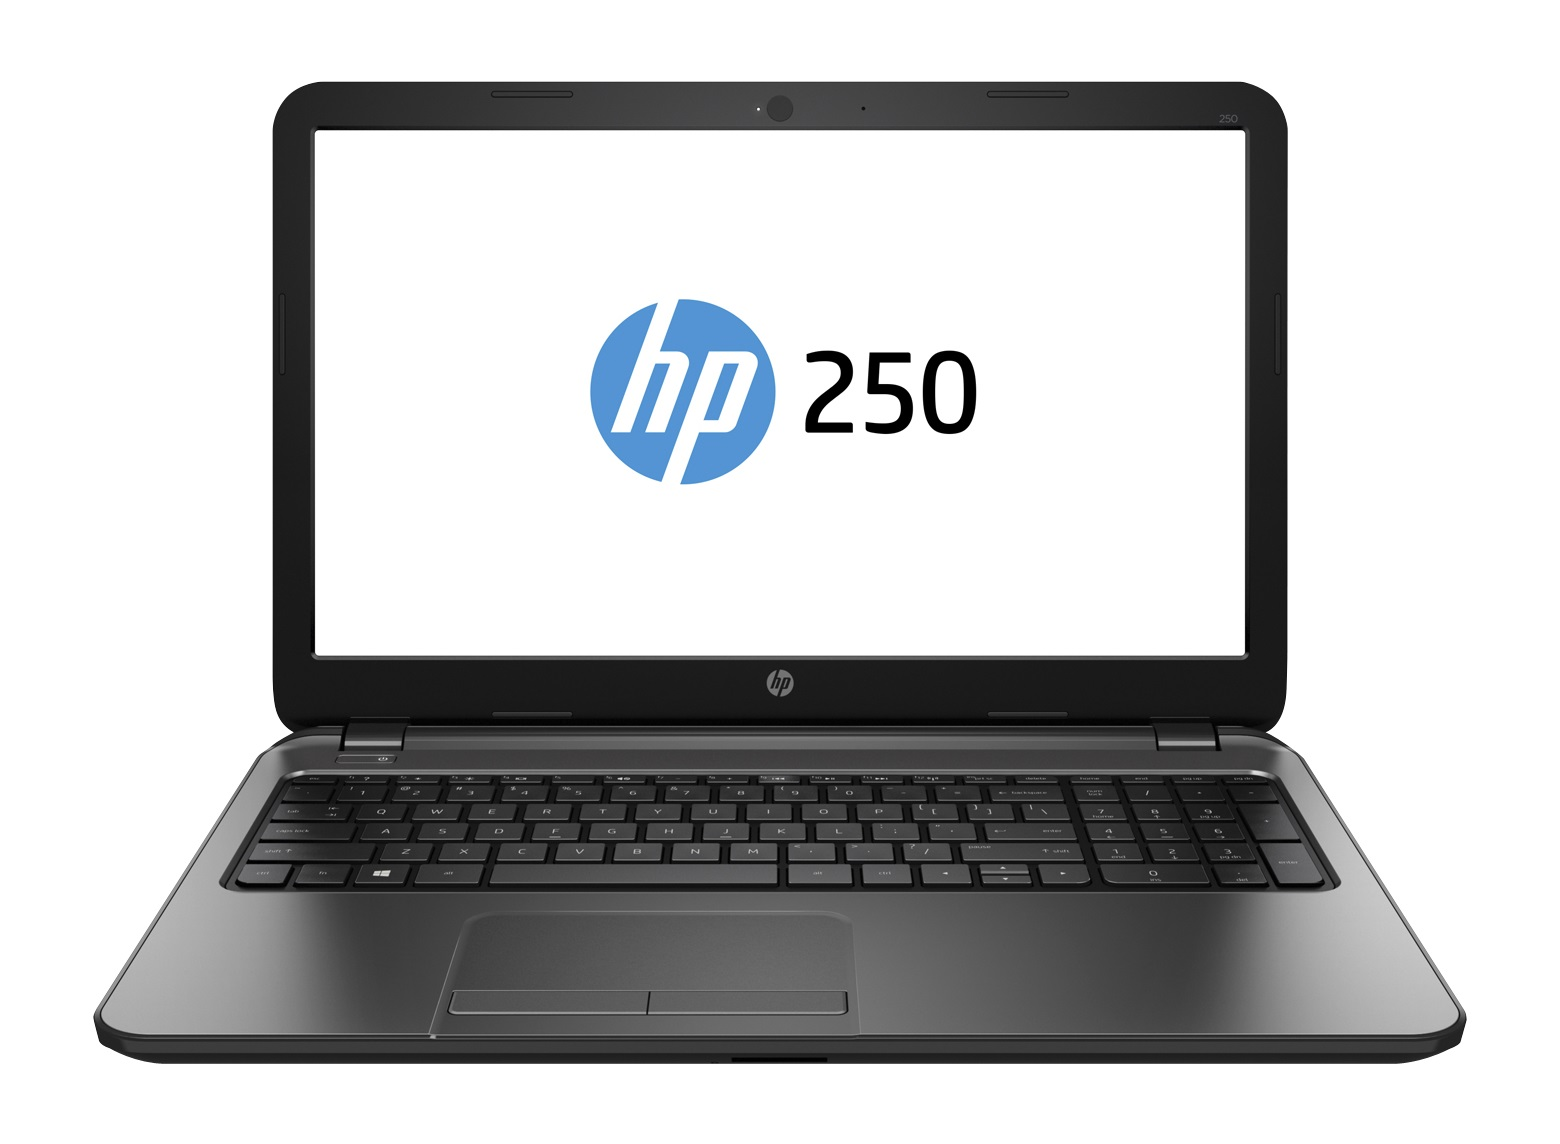 HP 250 G3 Notebook Review 129284 0 additionally 320 Rfid Tags And Readers For Robots as well Services further J5create Usb 3 0 Hdmi Gigabit Ether  1 Port Usb 3 0 Hub also Msinfo32. on computer usb card